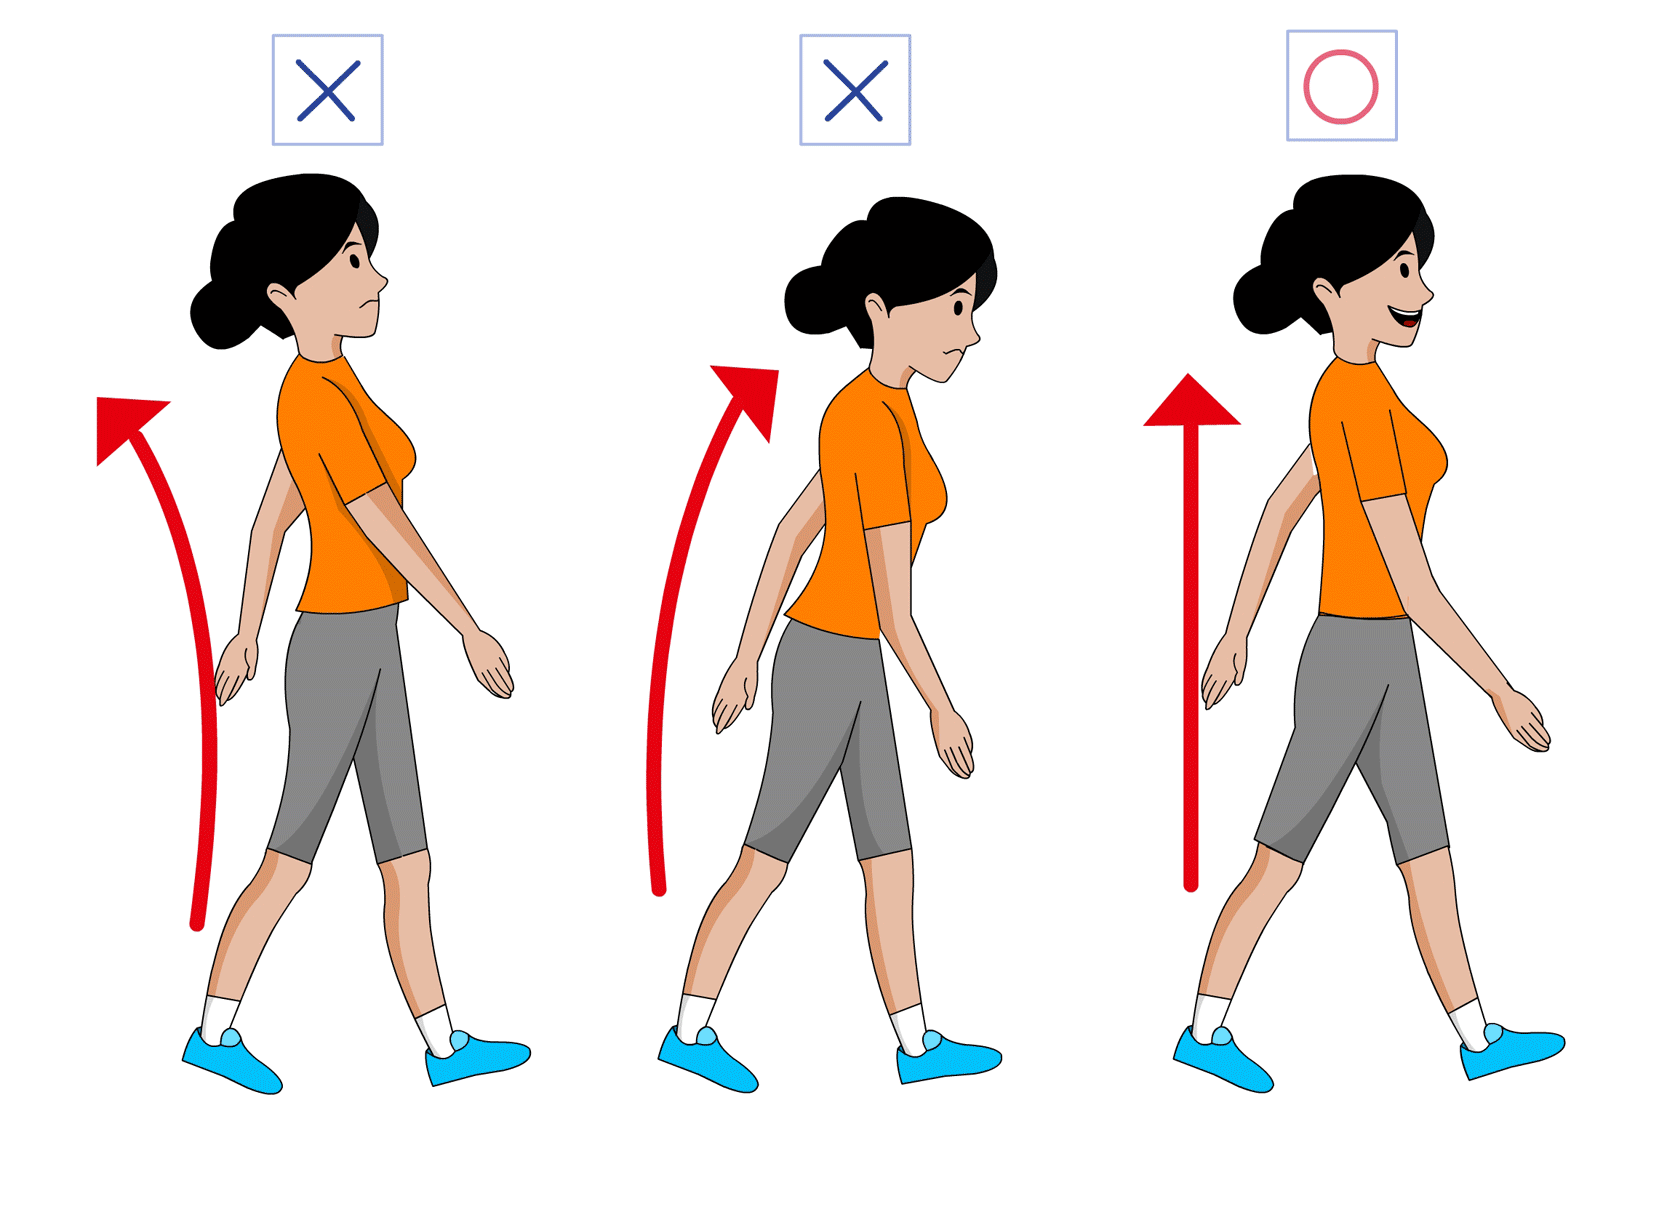 If you are already exercising, then do it the right way! A straight posture relieves the cervical spine and the intervertebral discs.